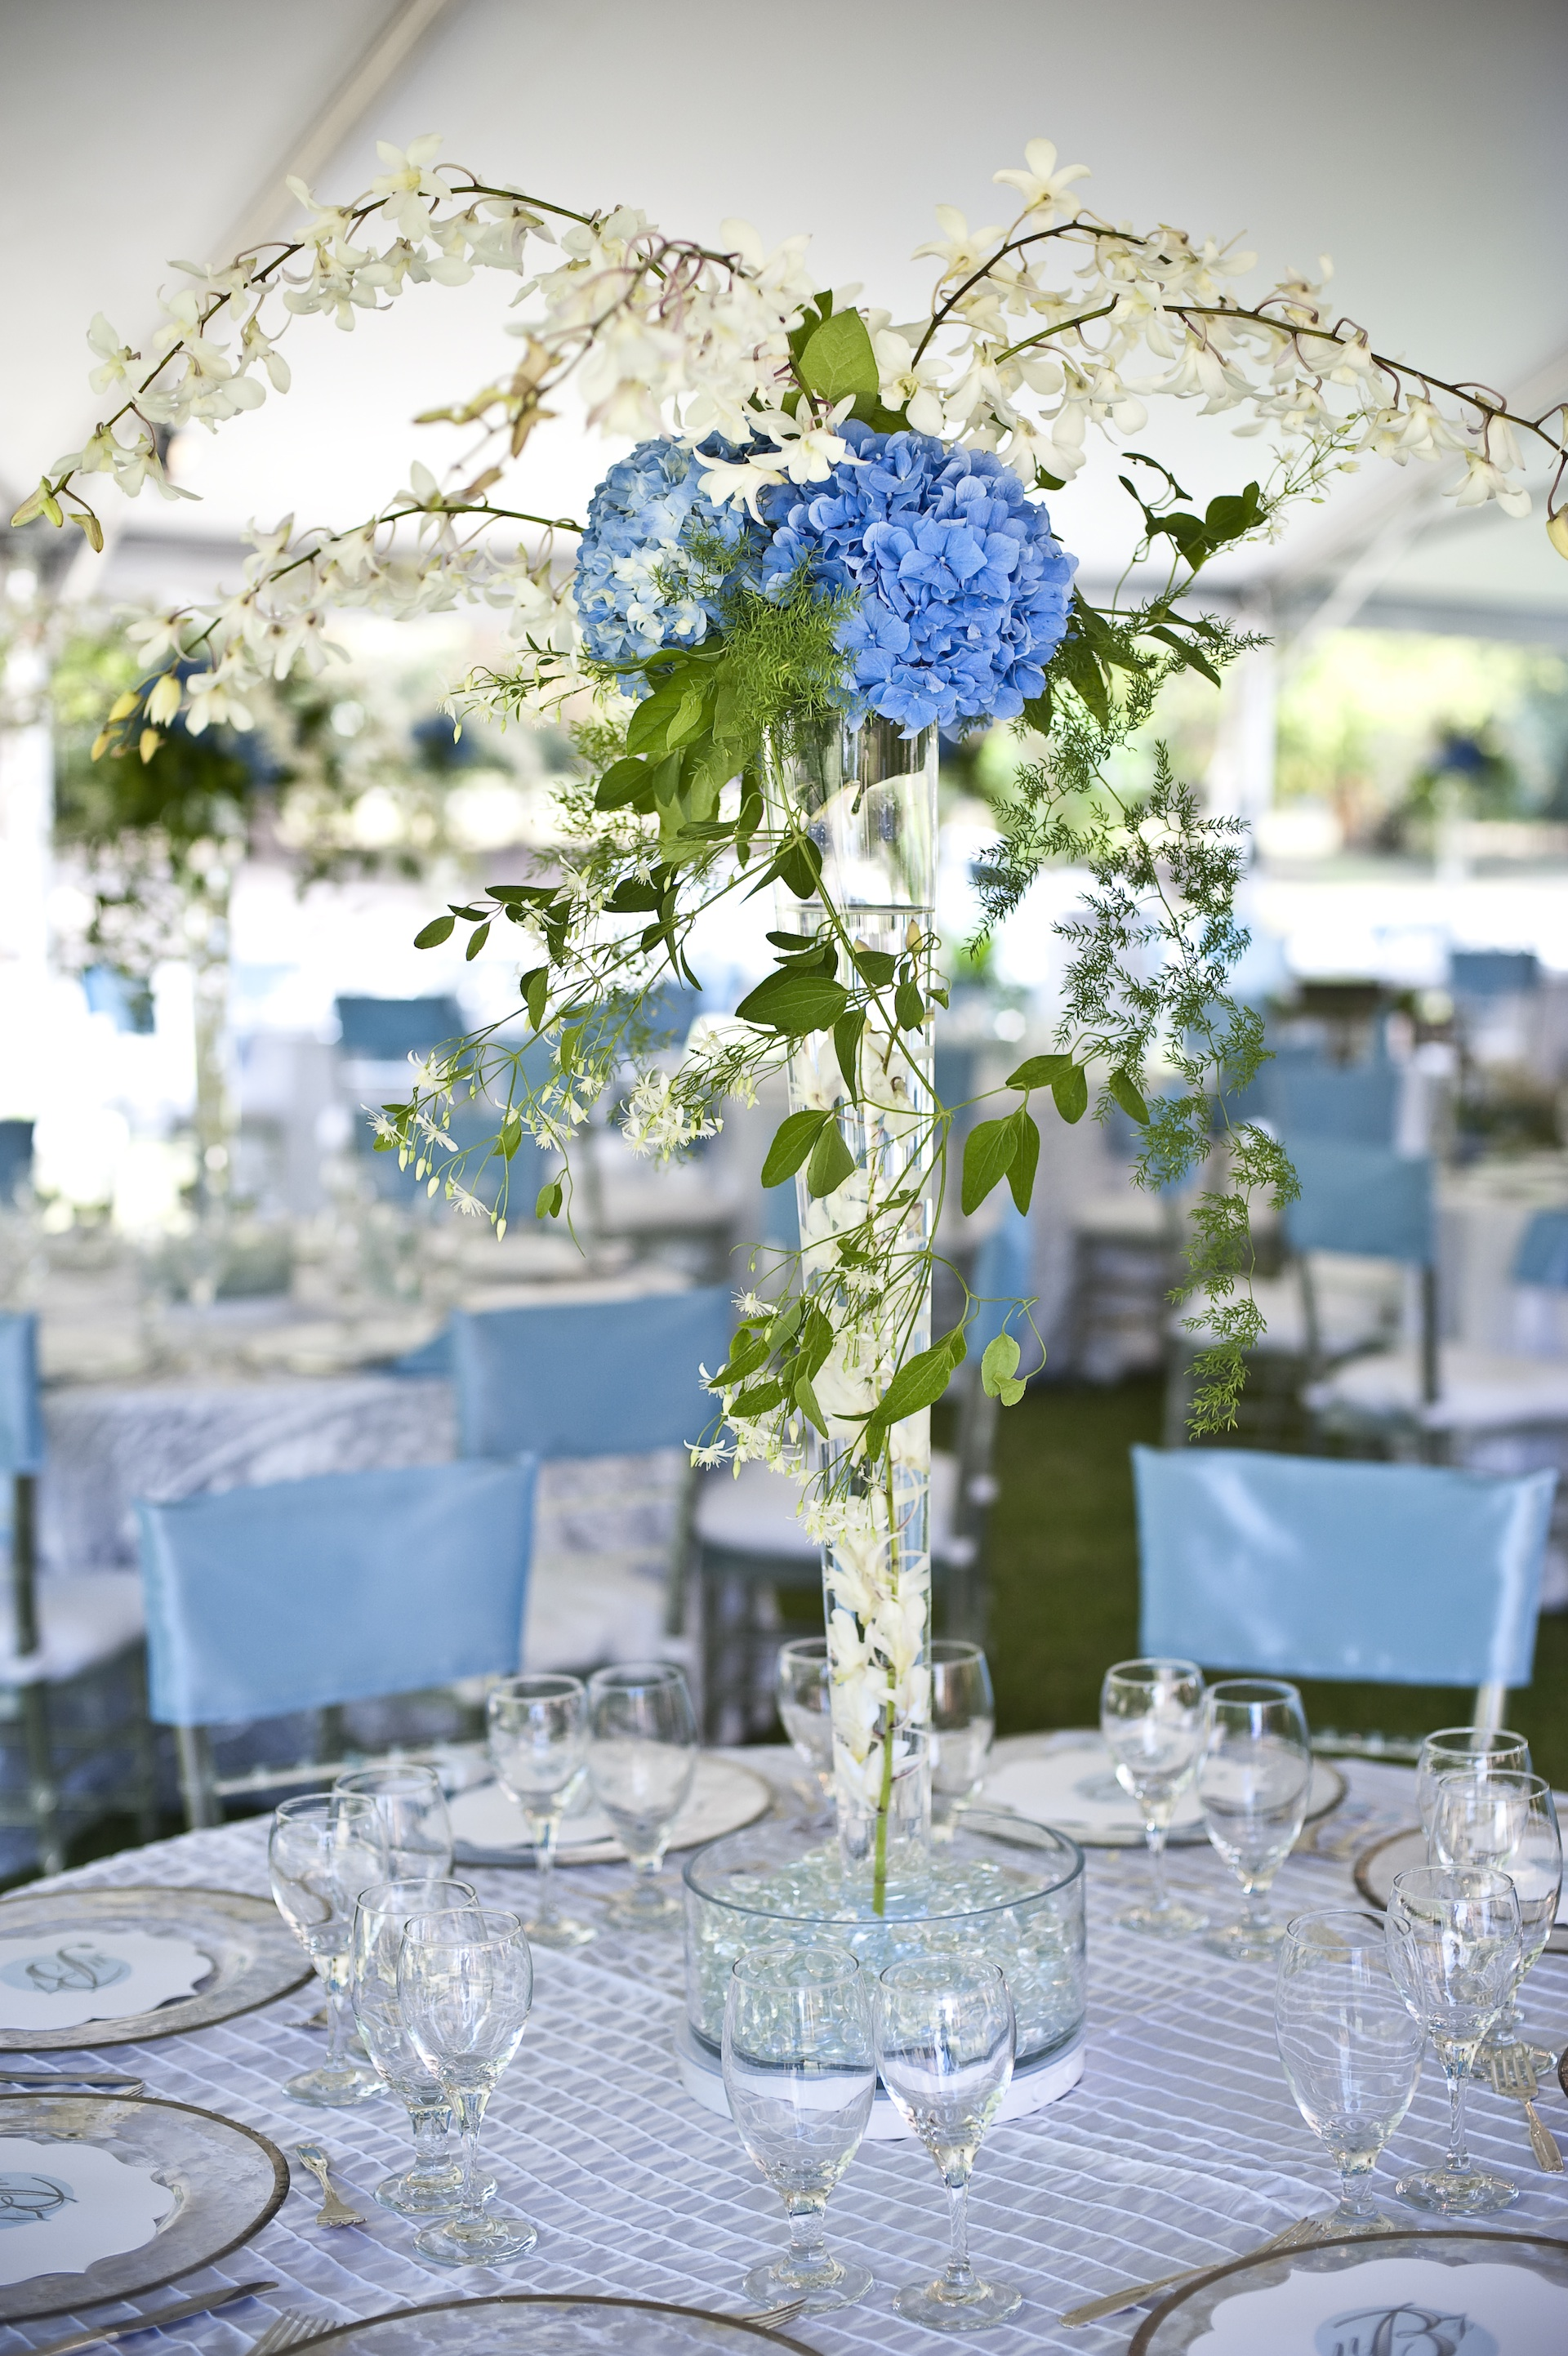 Memorable wedding something blue for your